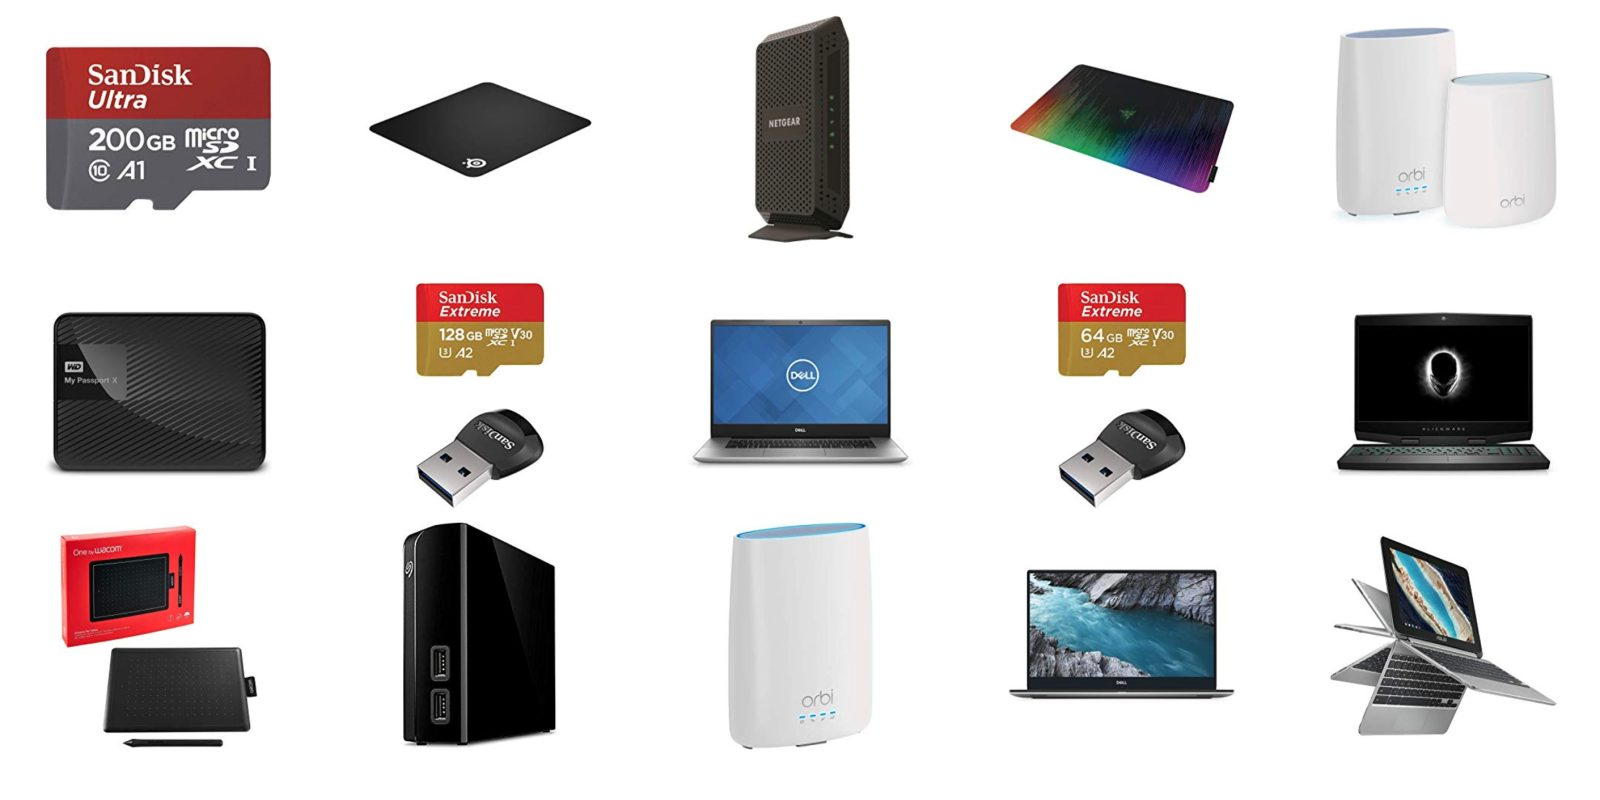 Amazon's Gold Box has Mac/PC gear from SanDisk, NETGEAR, more starting at $10